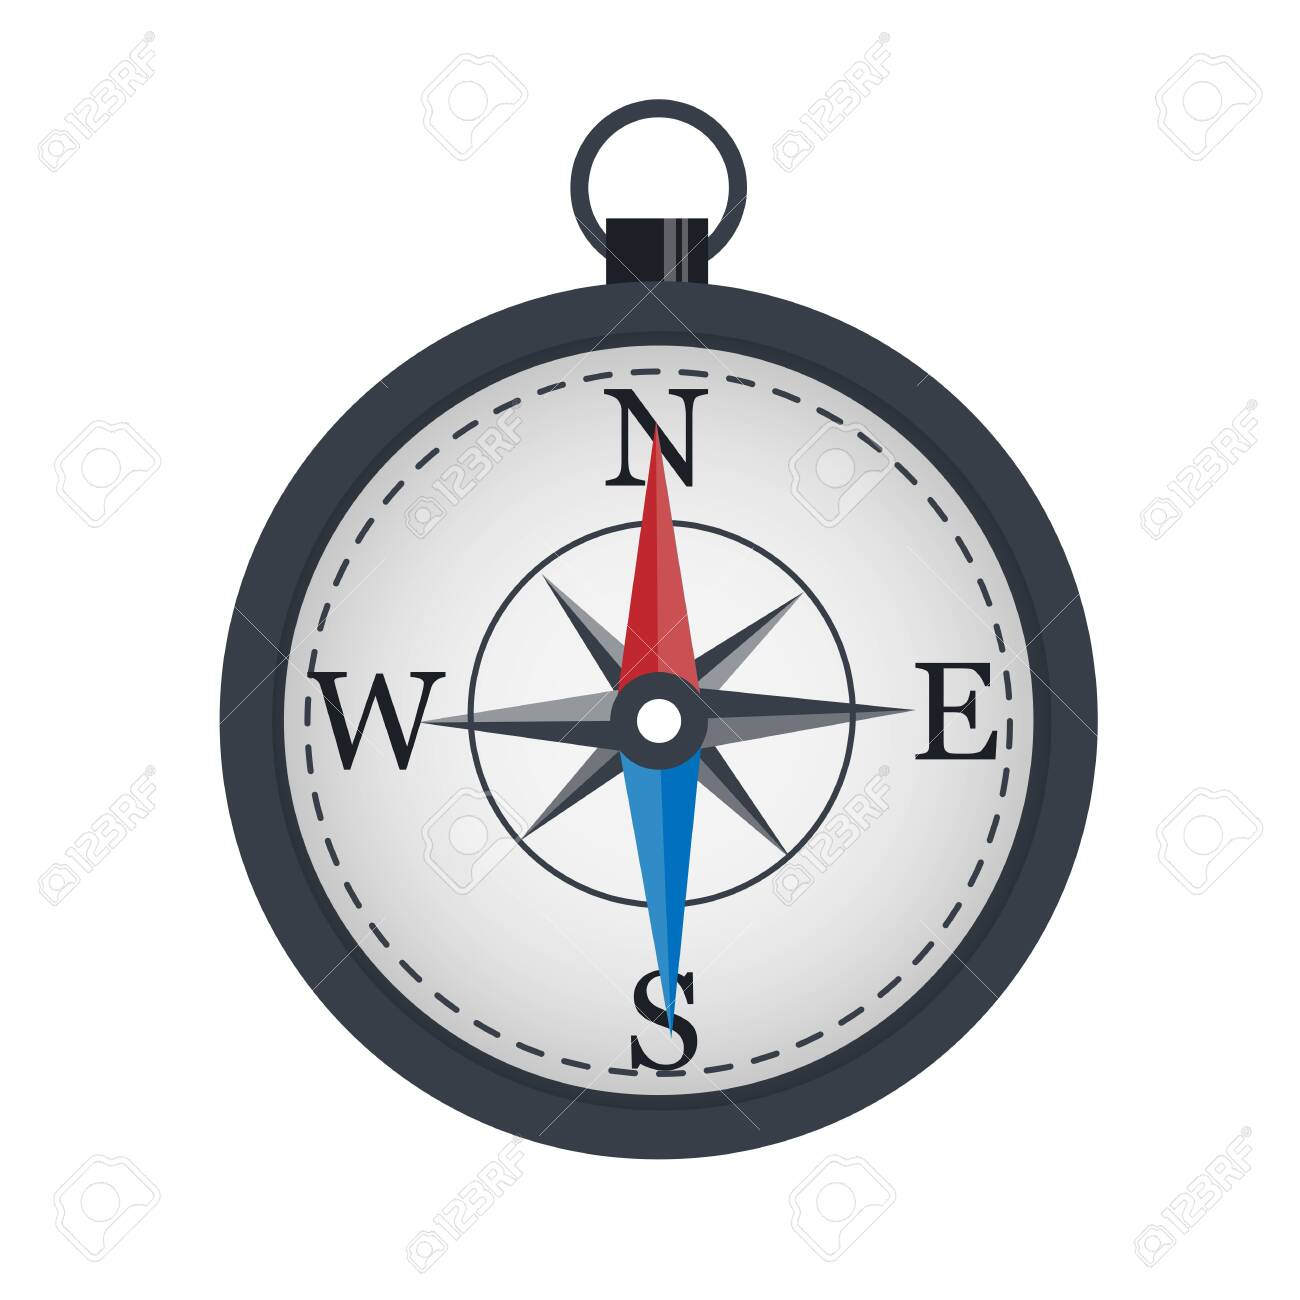 Compass The arrow indicates the direction. Location - 147402807